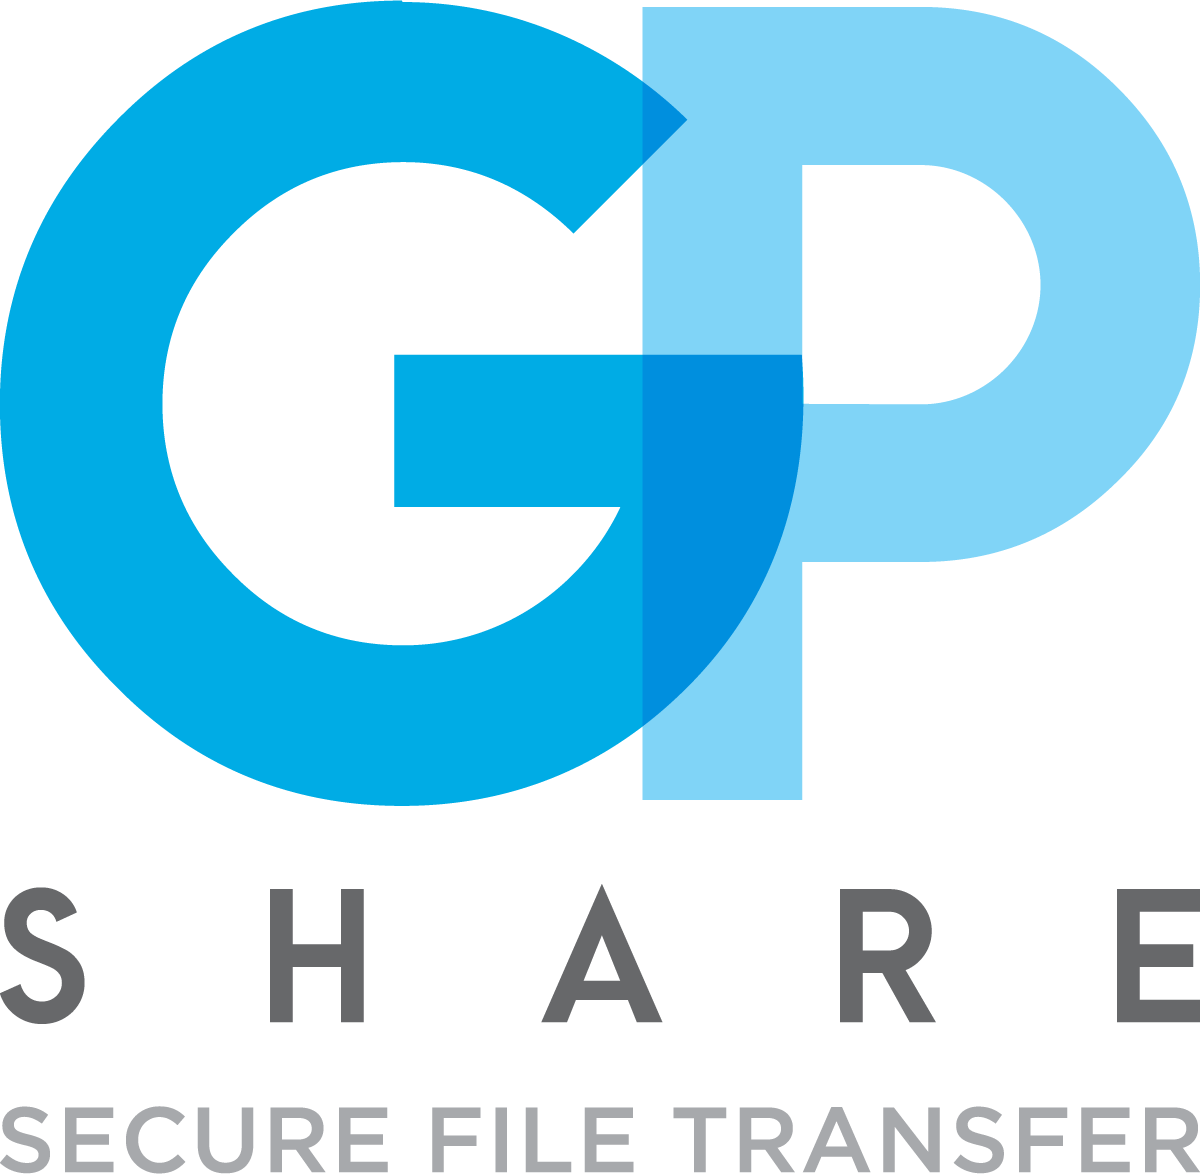 GPShare Help Centre home page